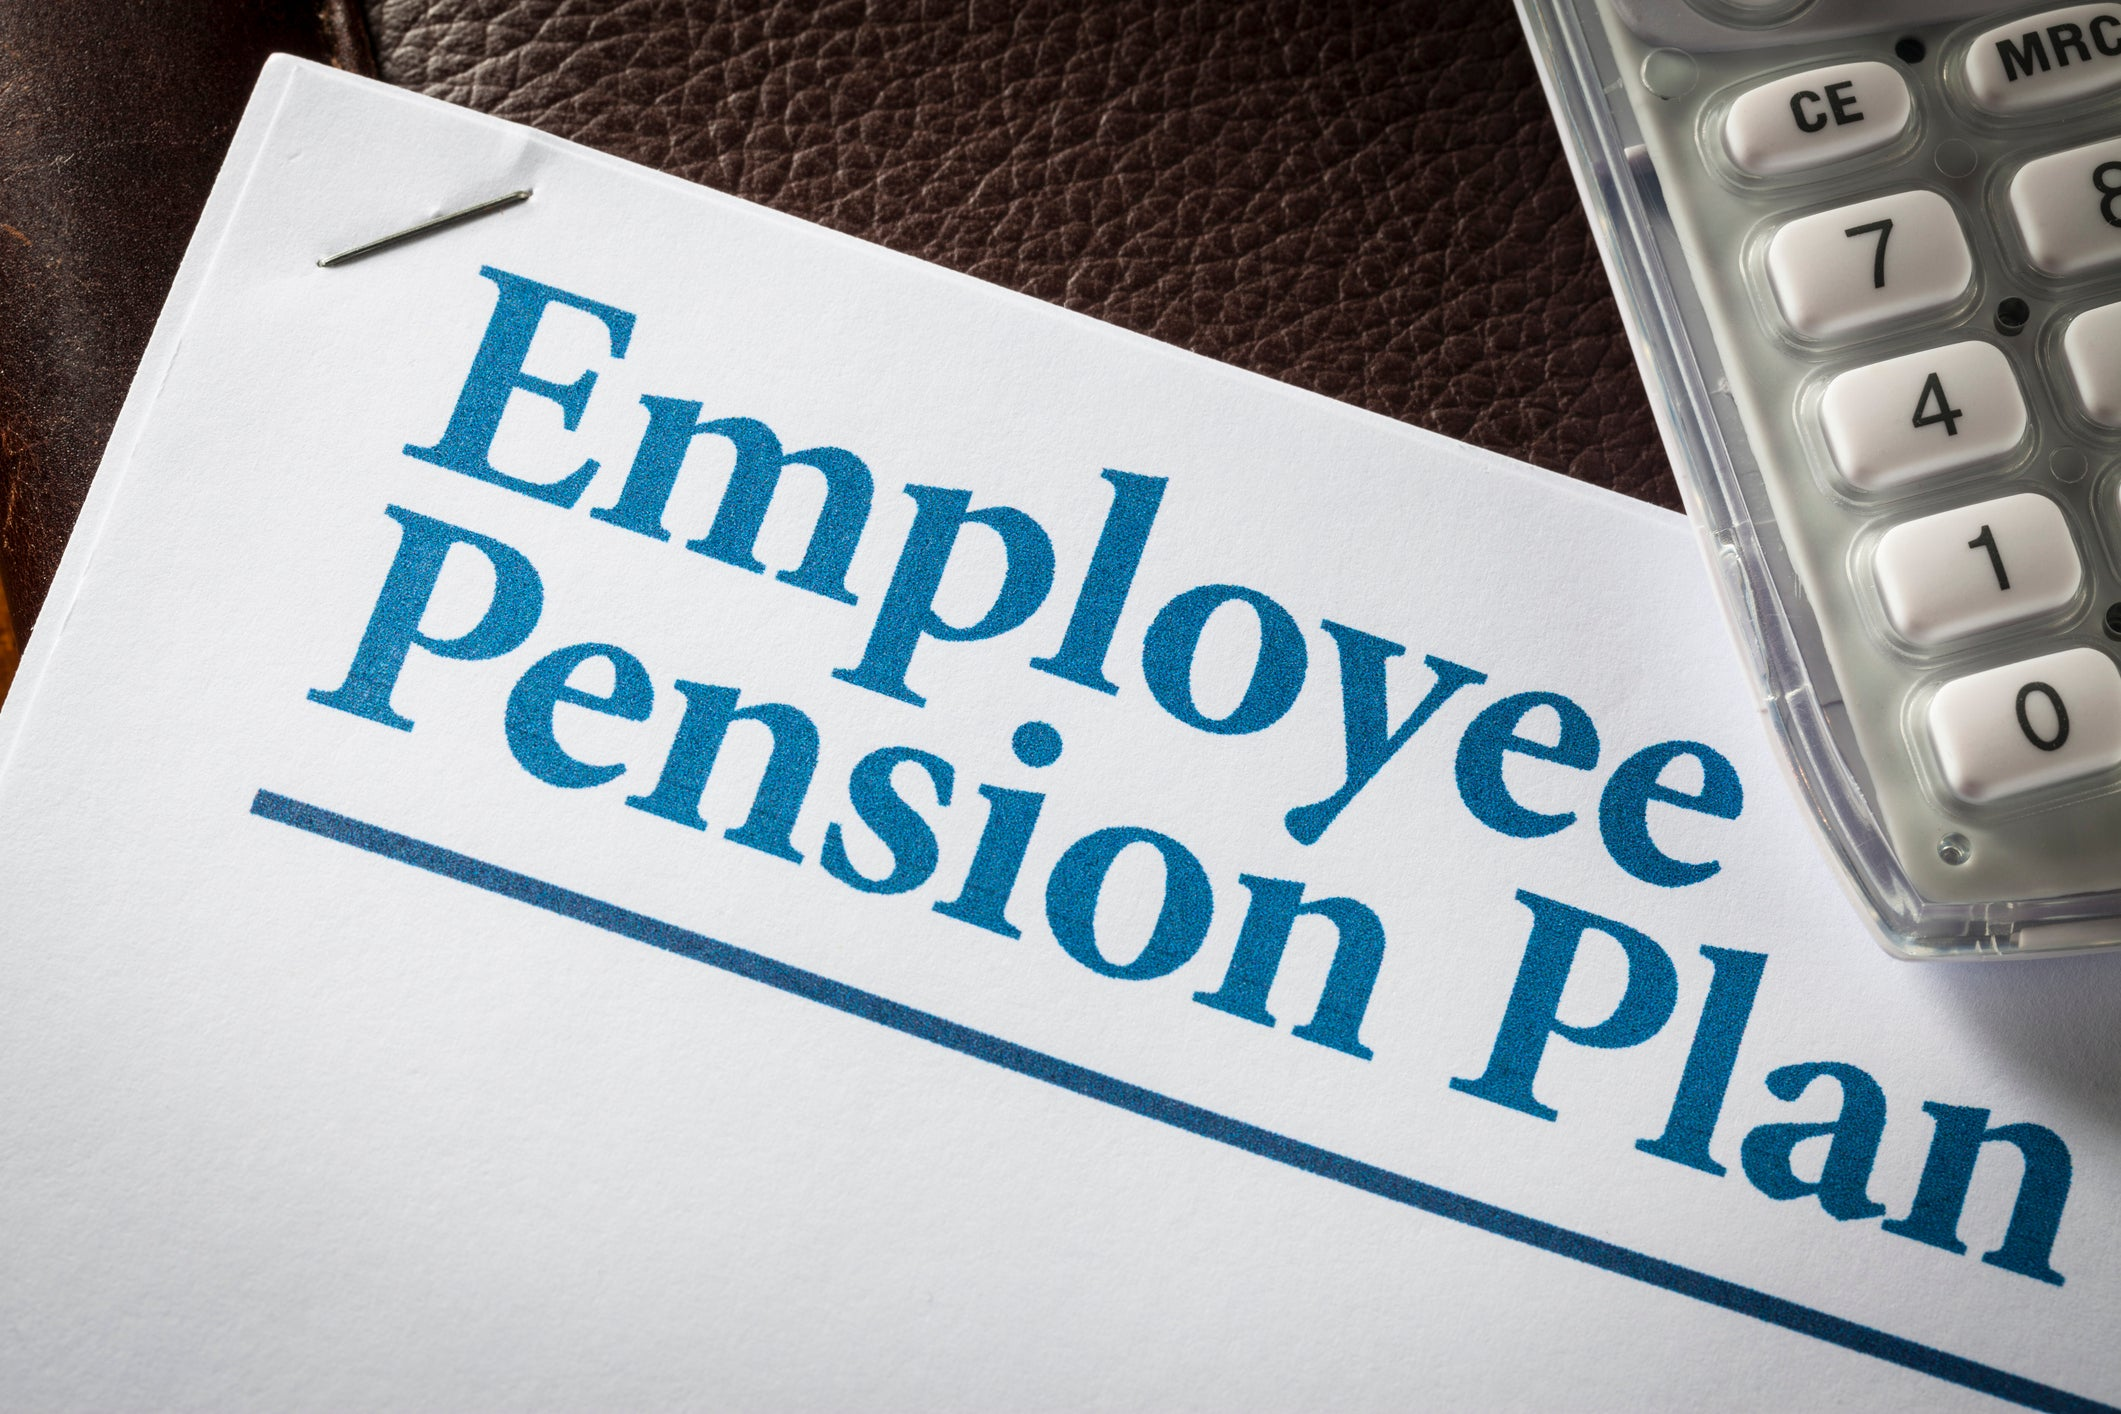 Lump sum payment to pensioners in 2018 24